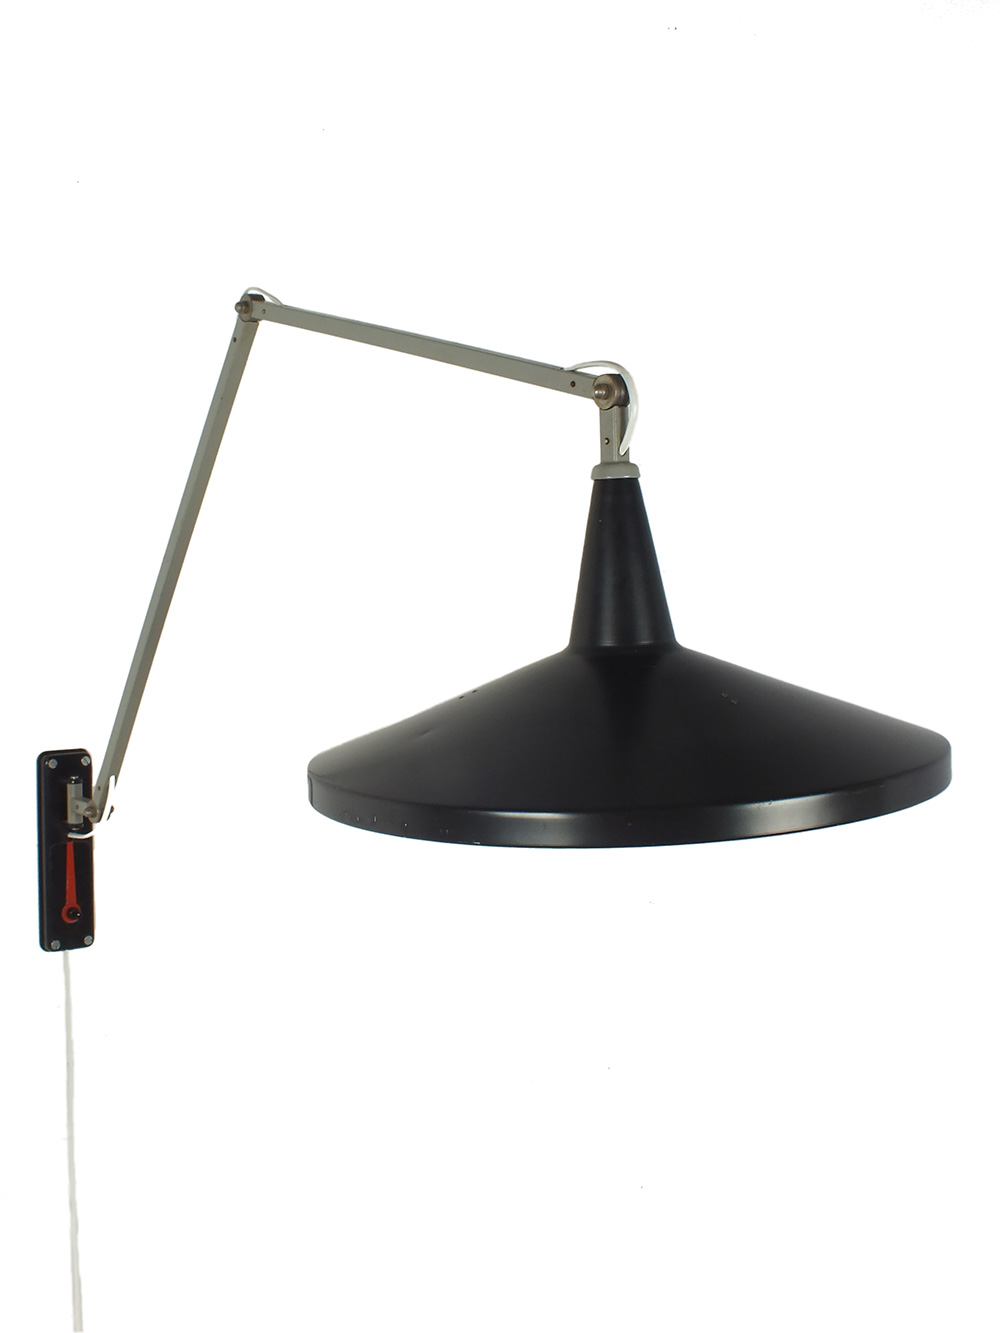 Rietveld Wandlamp Panama Wall Light Model 4050 Wim Rietveld Gispen